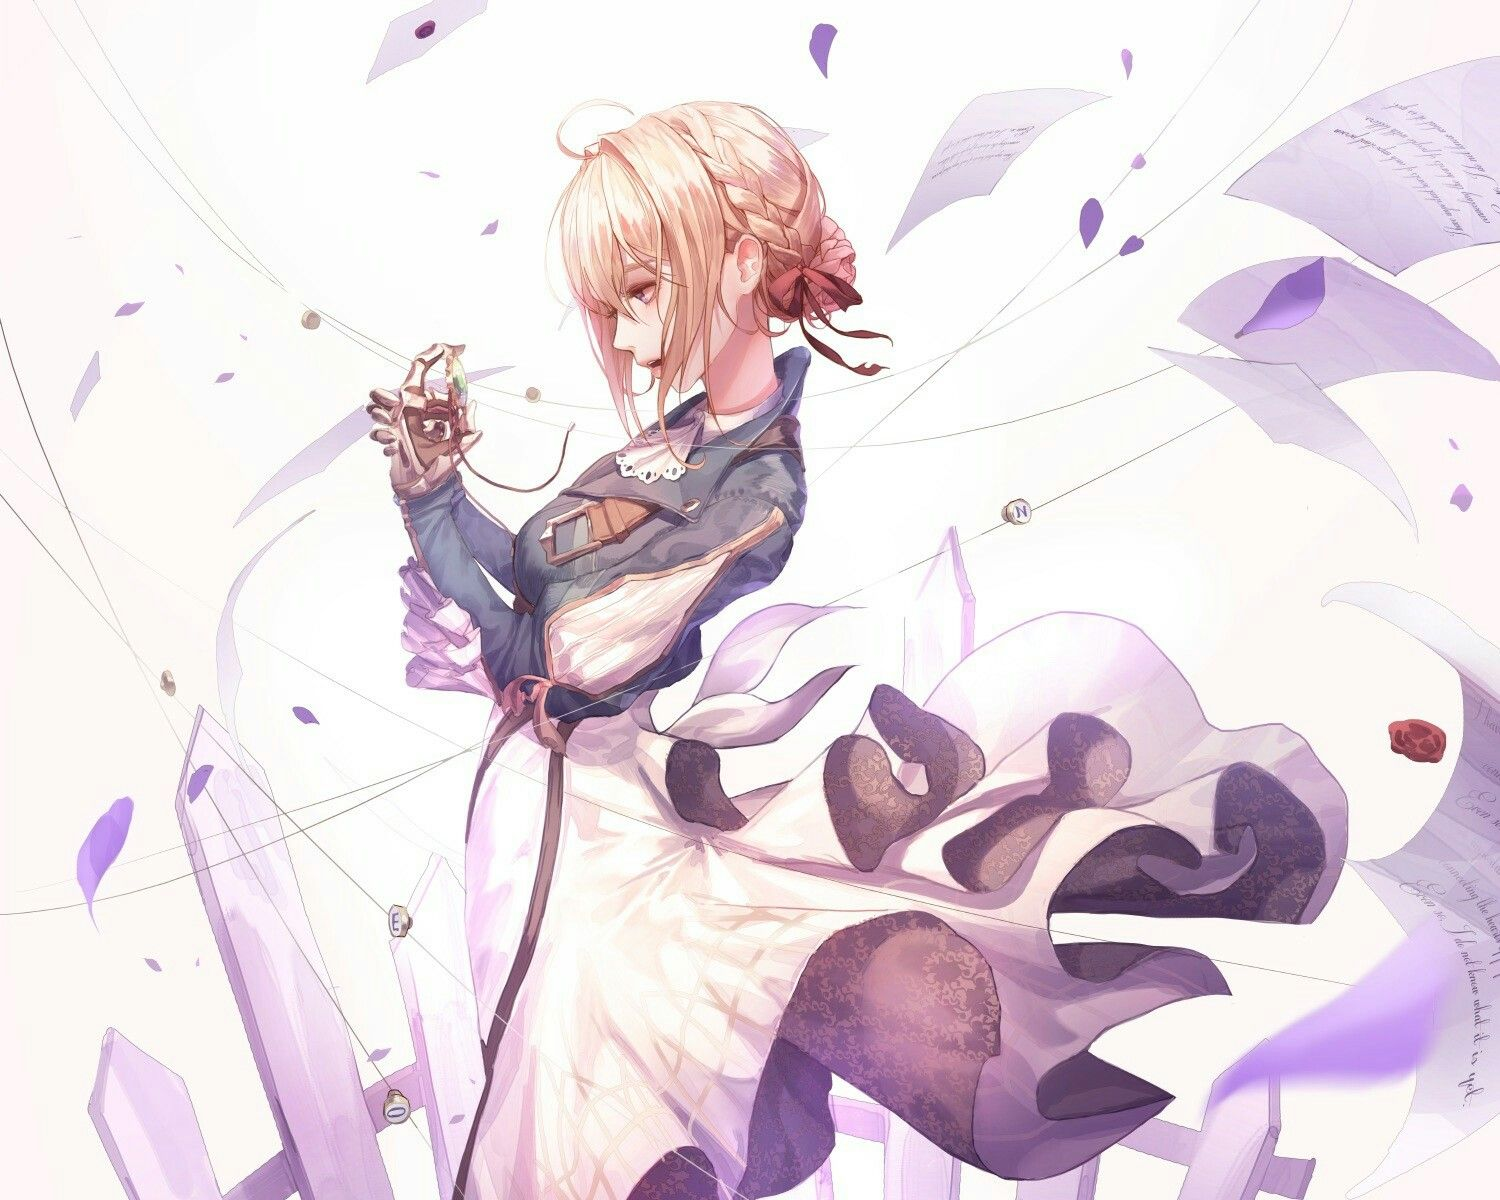 Pin by manachan on violet evergarden pinterest violets anime